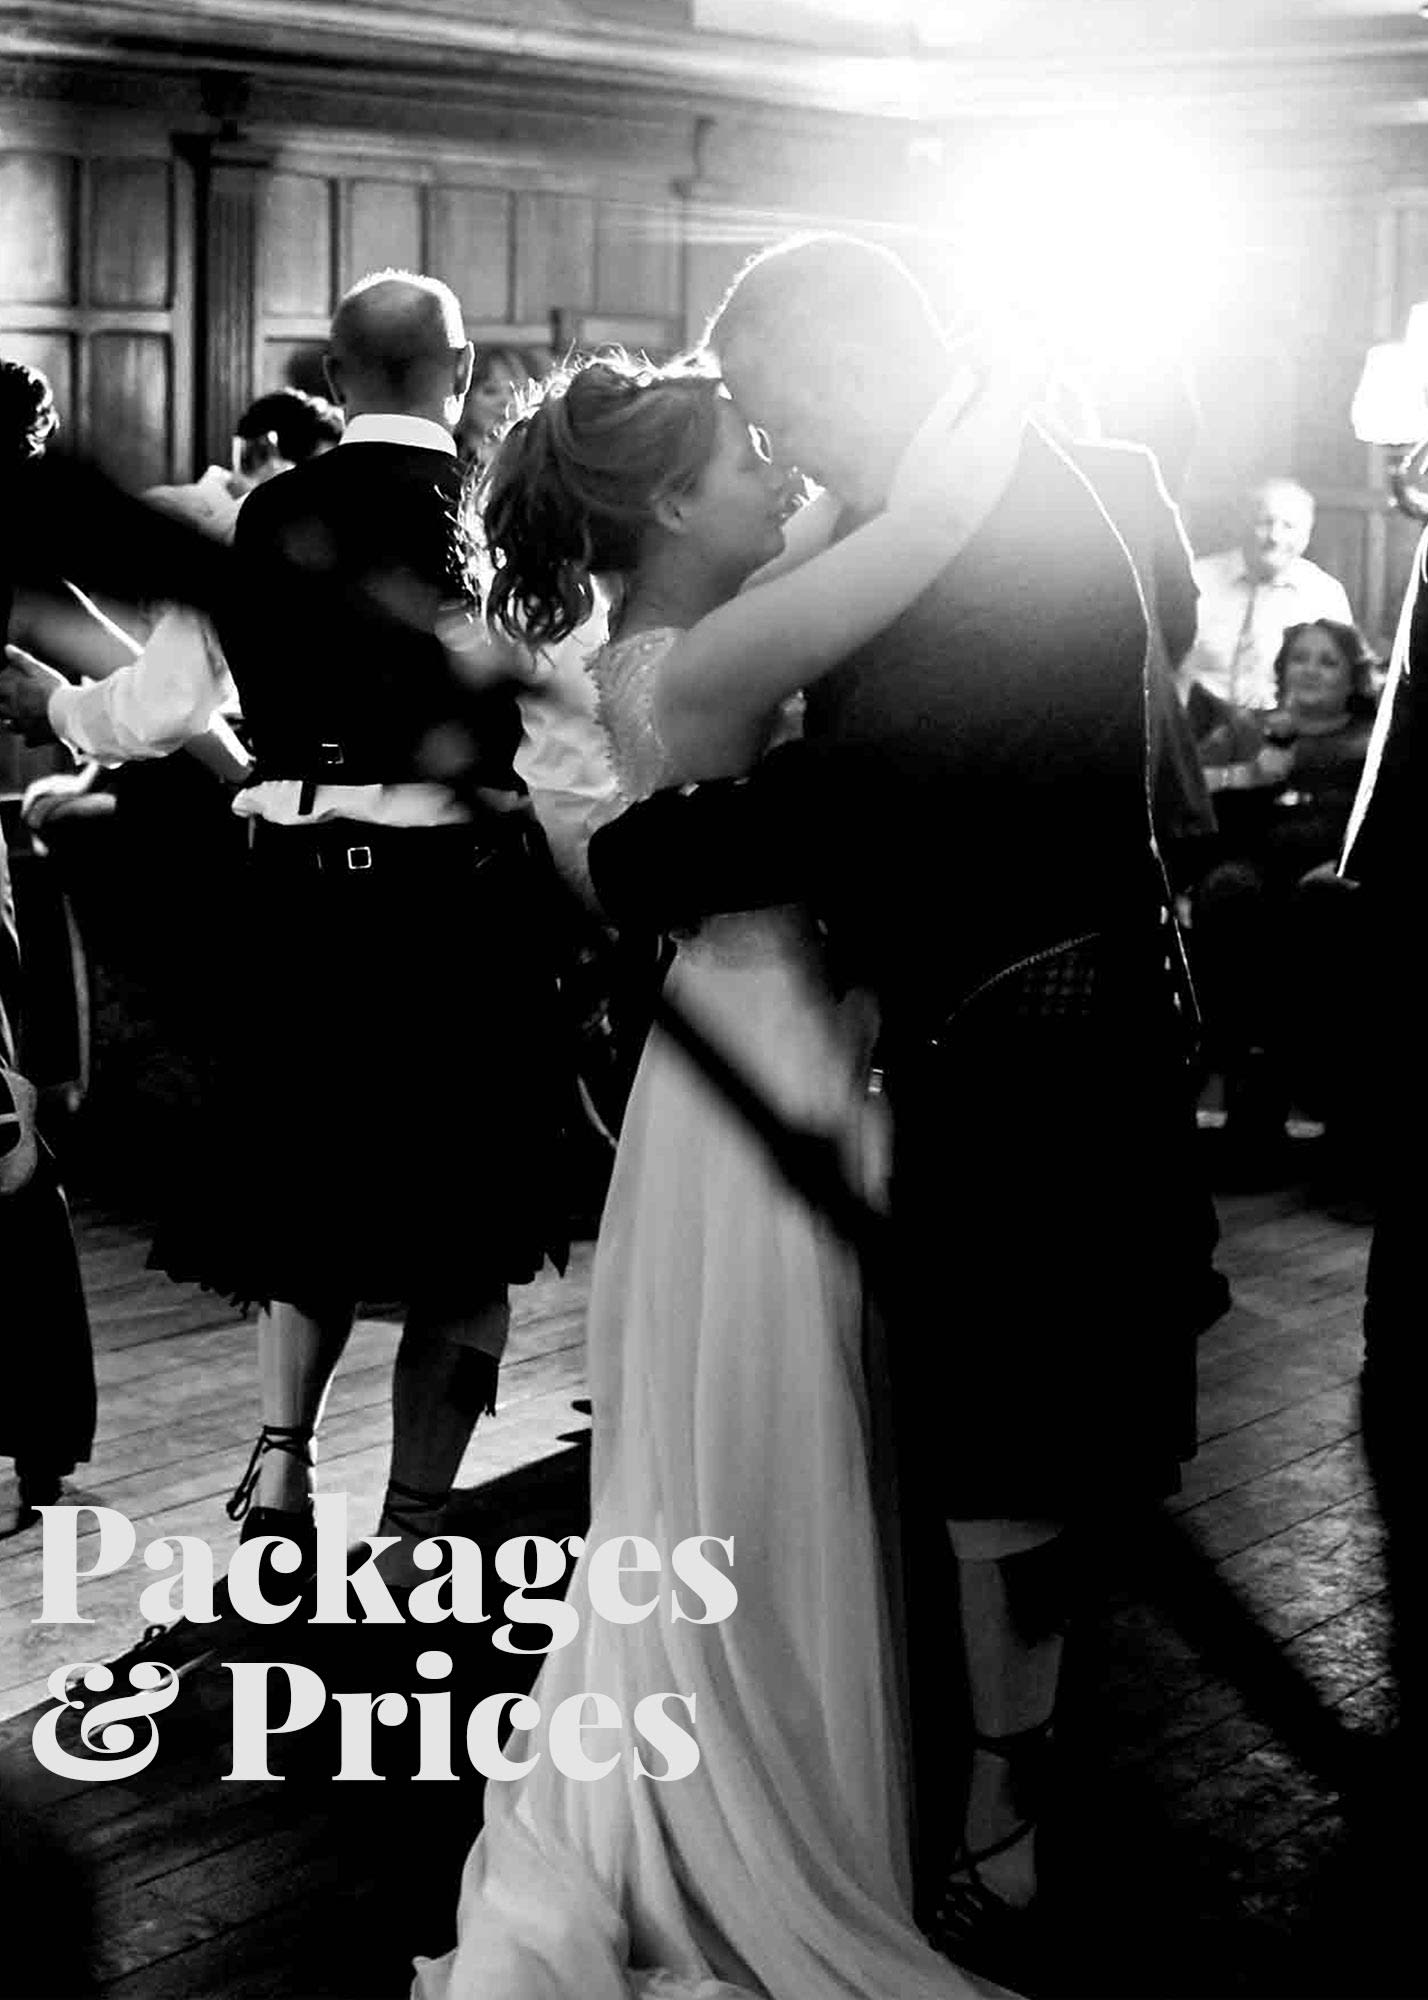 Wedding Photography Packages And Pricing